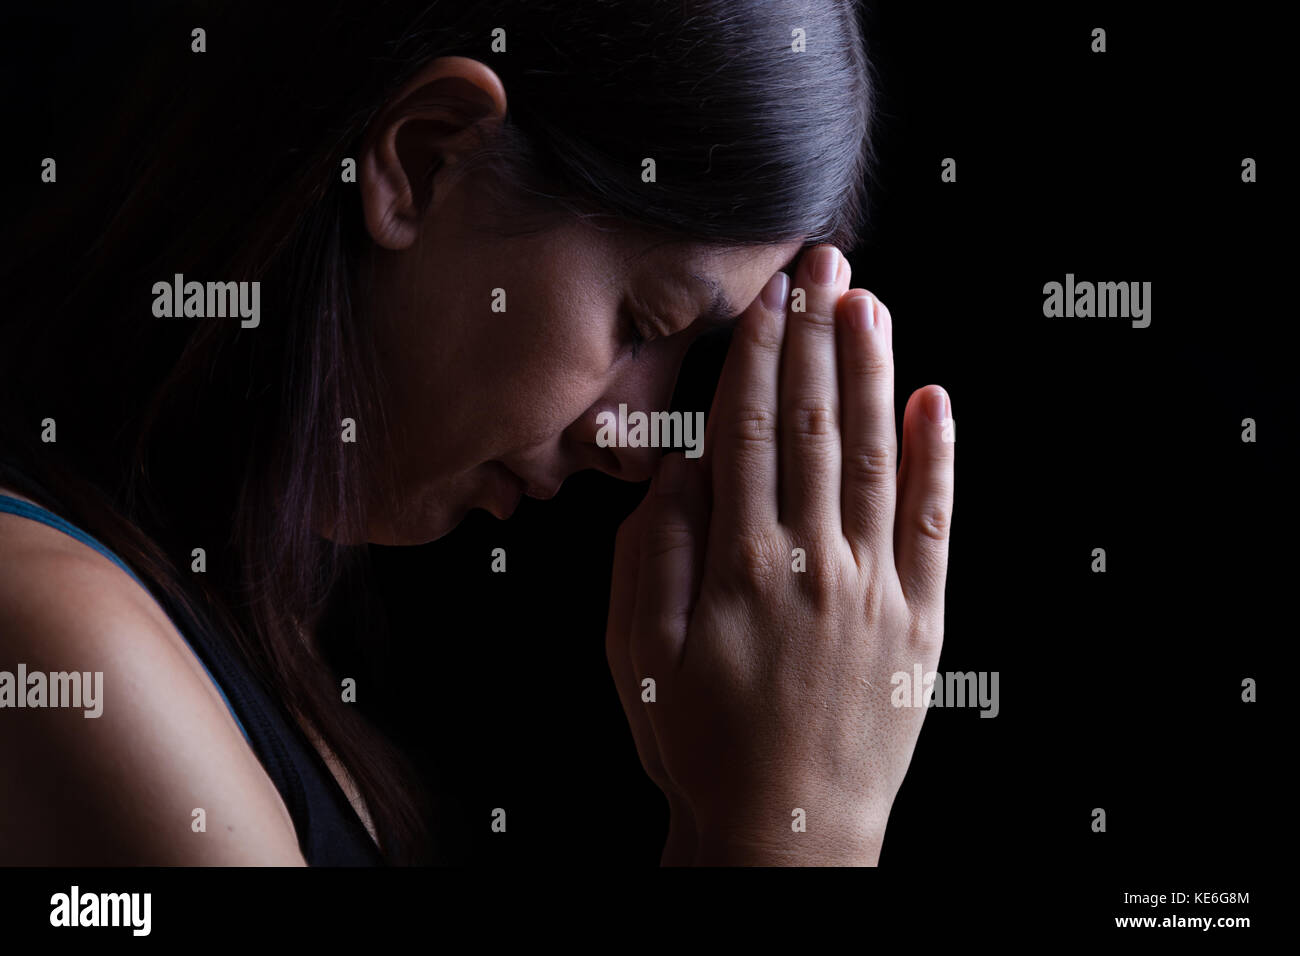 Faithful woman praying, hands folded in worship to god with head down and eyes closed in religious fervor, on a - Stock Image